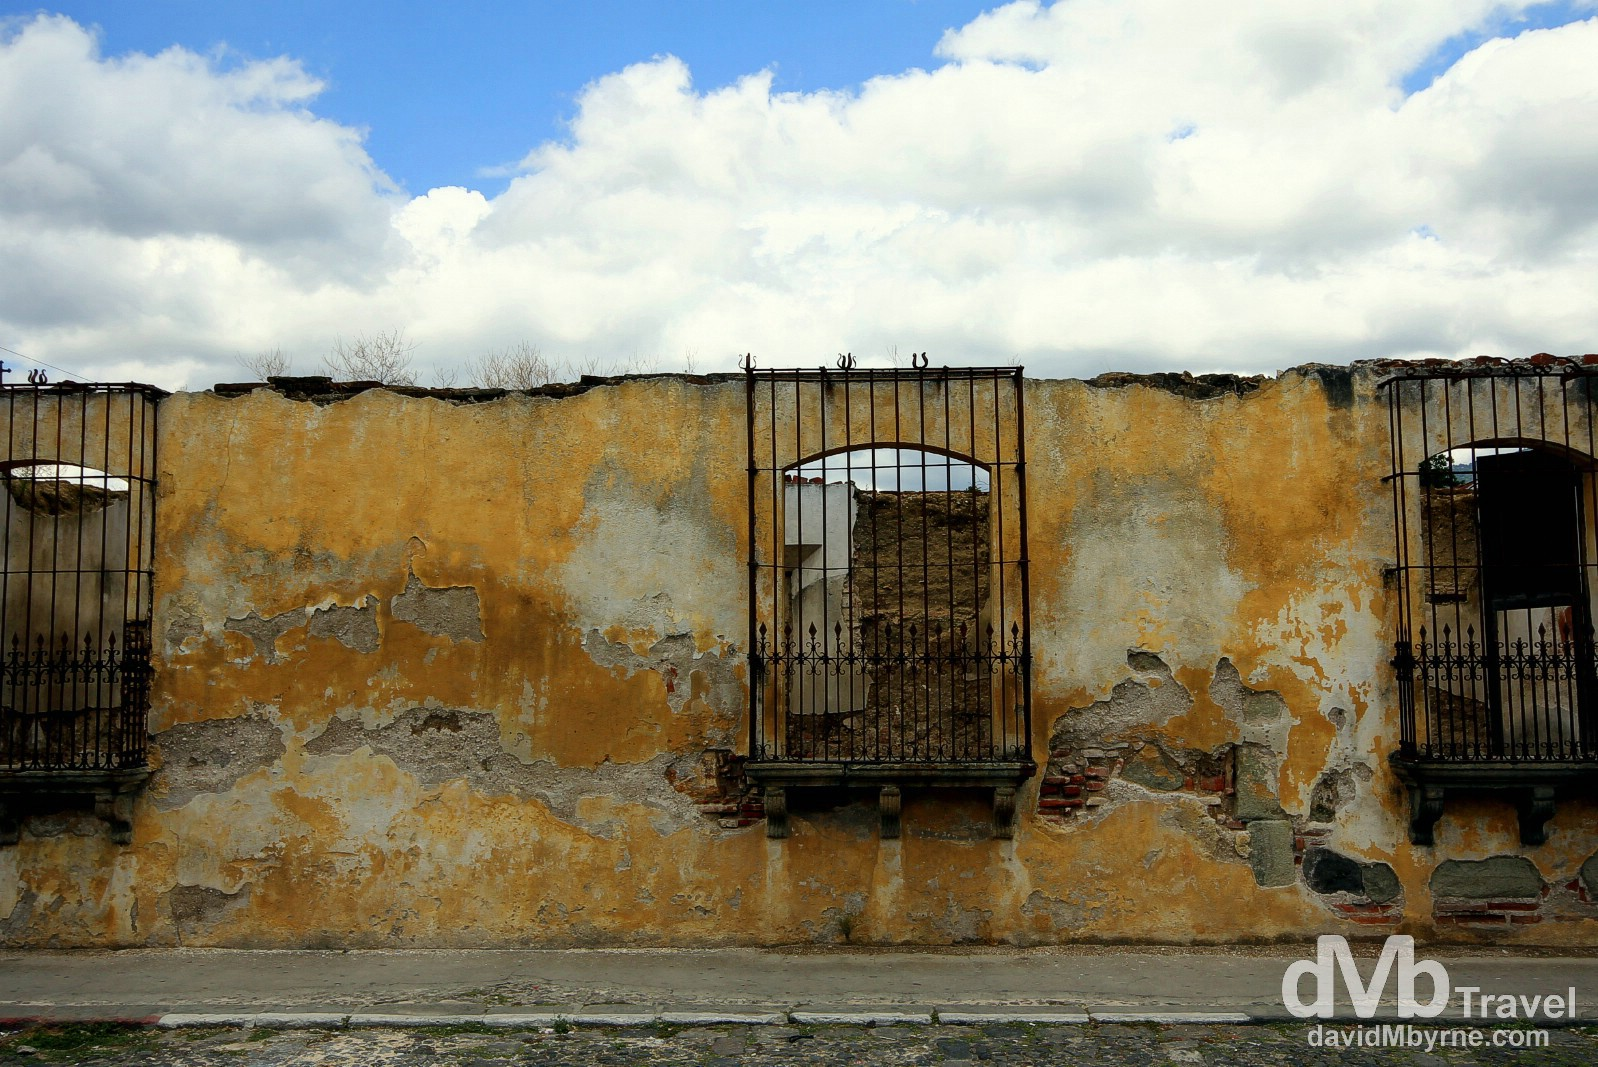 Antigua, Guatemala. May 25th 2013.